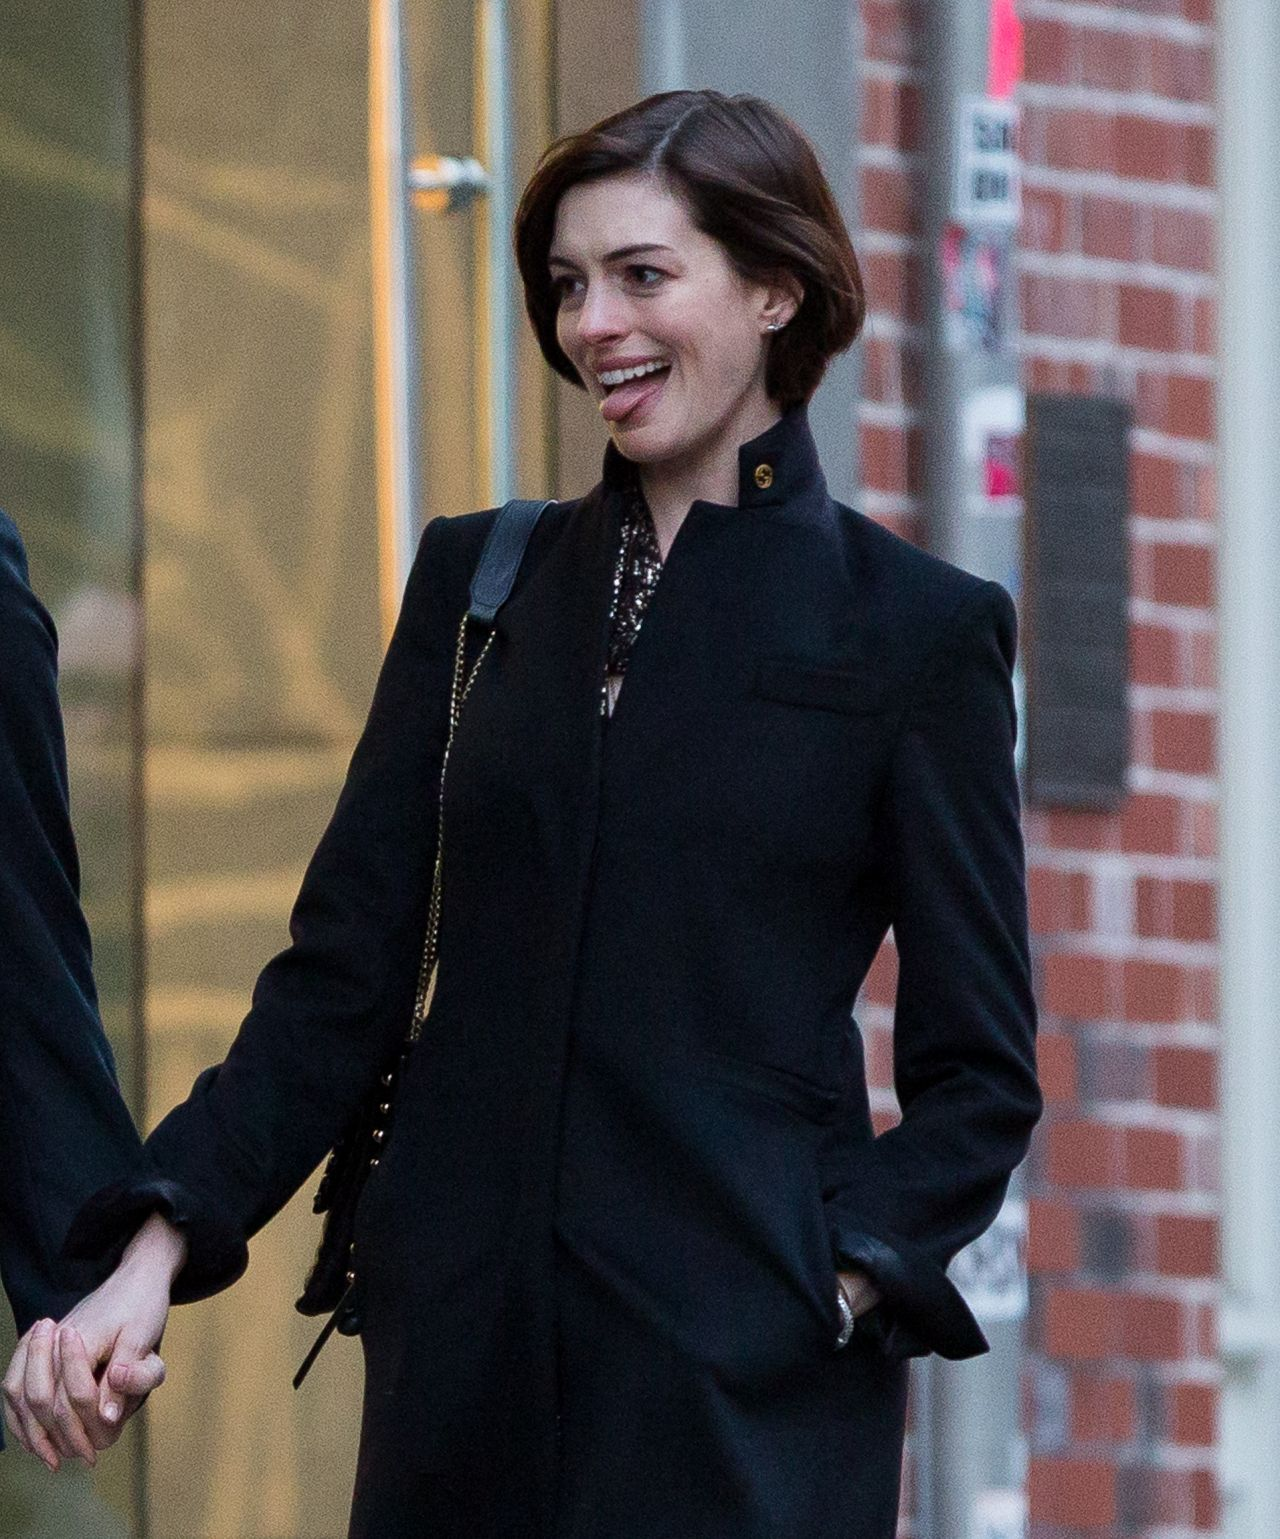 Anne Hathaway Spouse: Anne Hathaway With Her Husband Adam Shulman